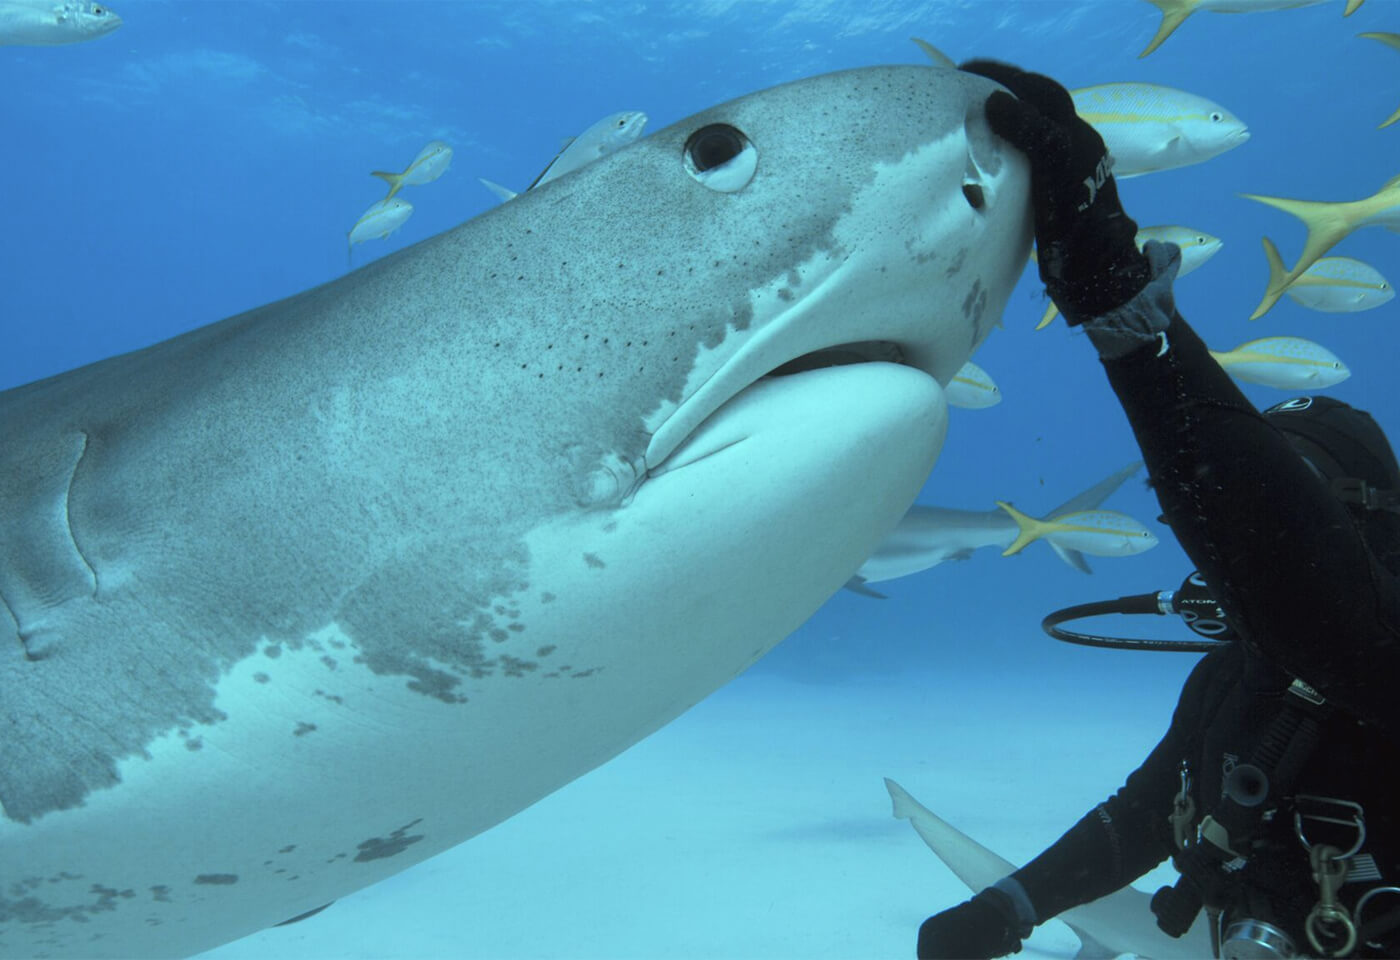 Takes by light image of diver patting a shark